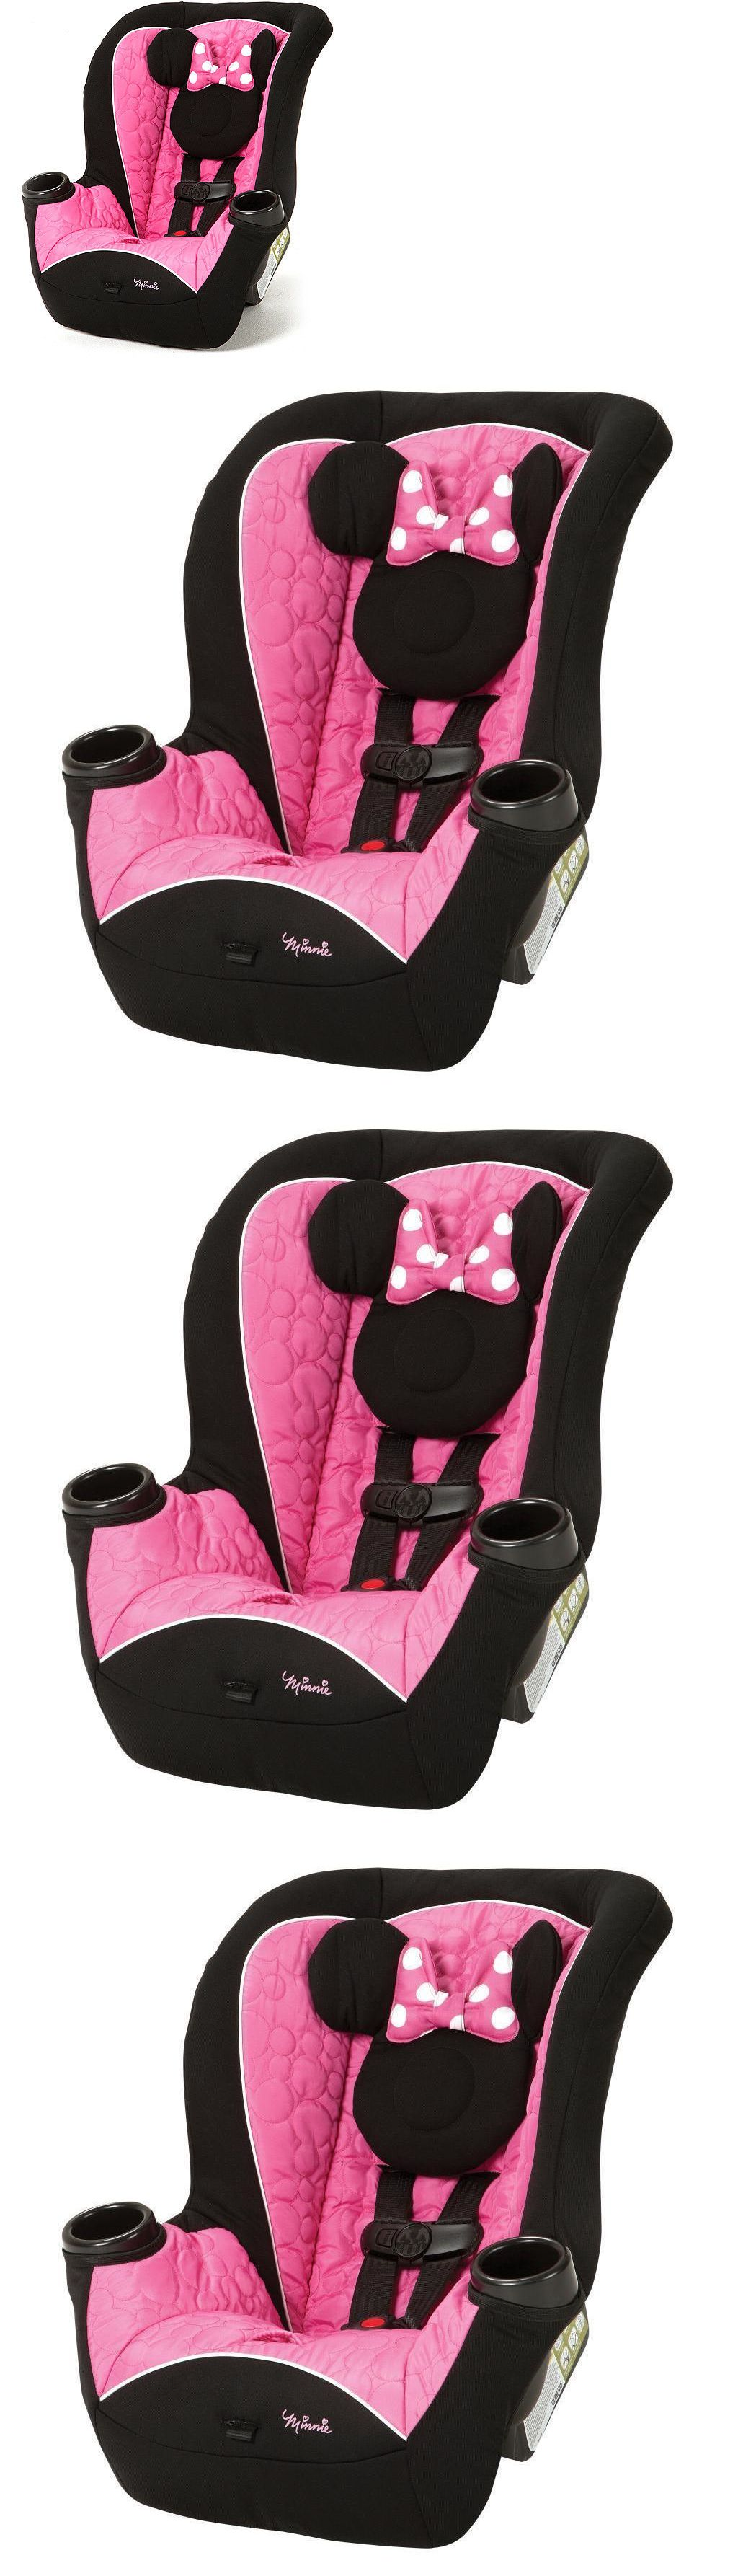 Convertible Car Seat 5 40lbs 66695 Baby Minnie Mouse Chair